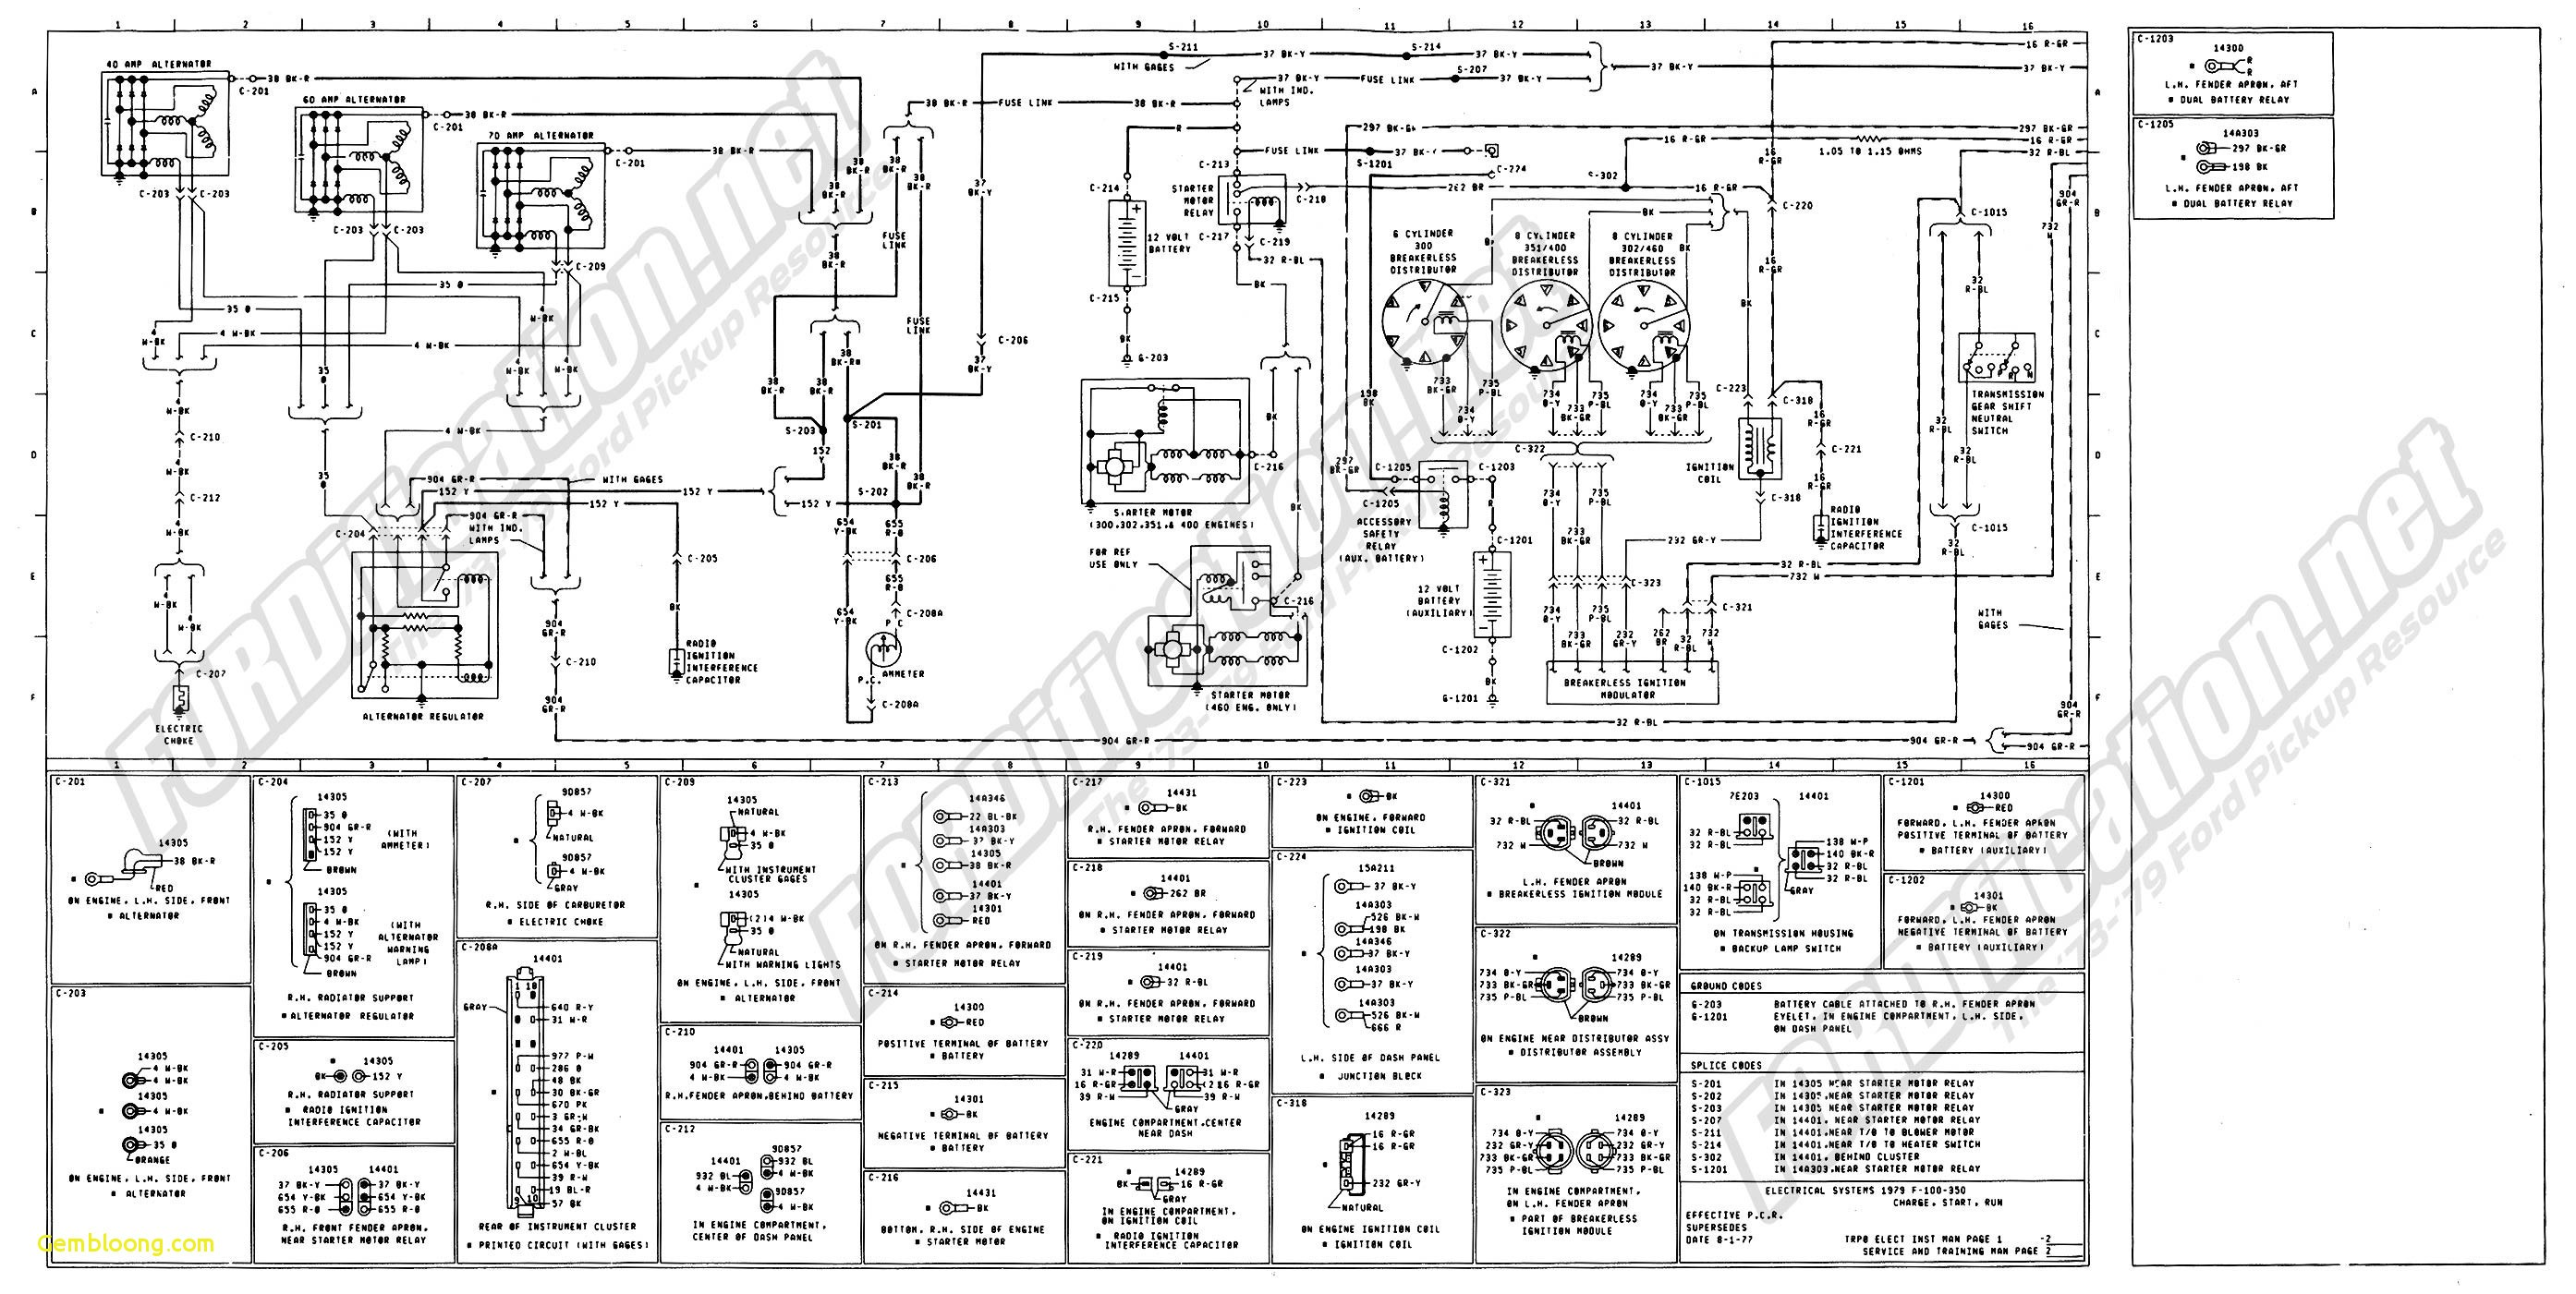 2006 ford Expedition Engine Diagram Free ford Trucks Wiring Diagrams 1995 ford F150 Radio Wiring Diagram Of 2006 ford Expedition Engine Diagram Used 2002 F250 Wiring Harness Another Blog About Wiring Diagram •